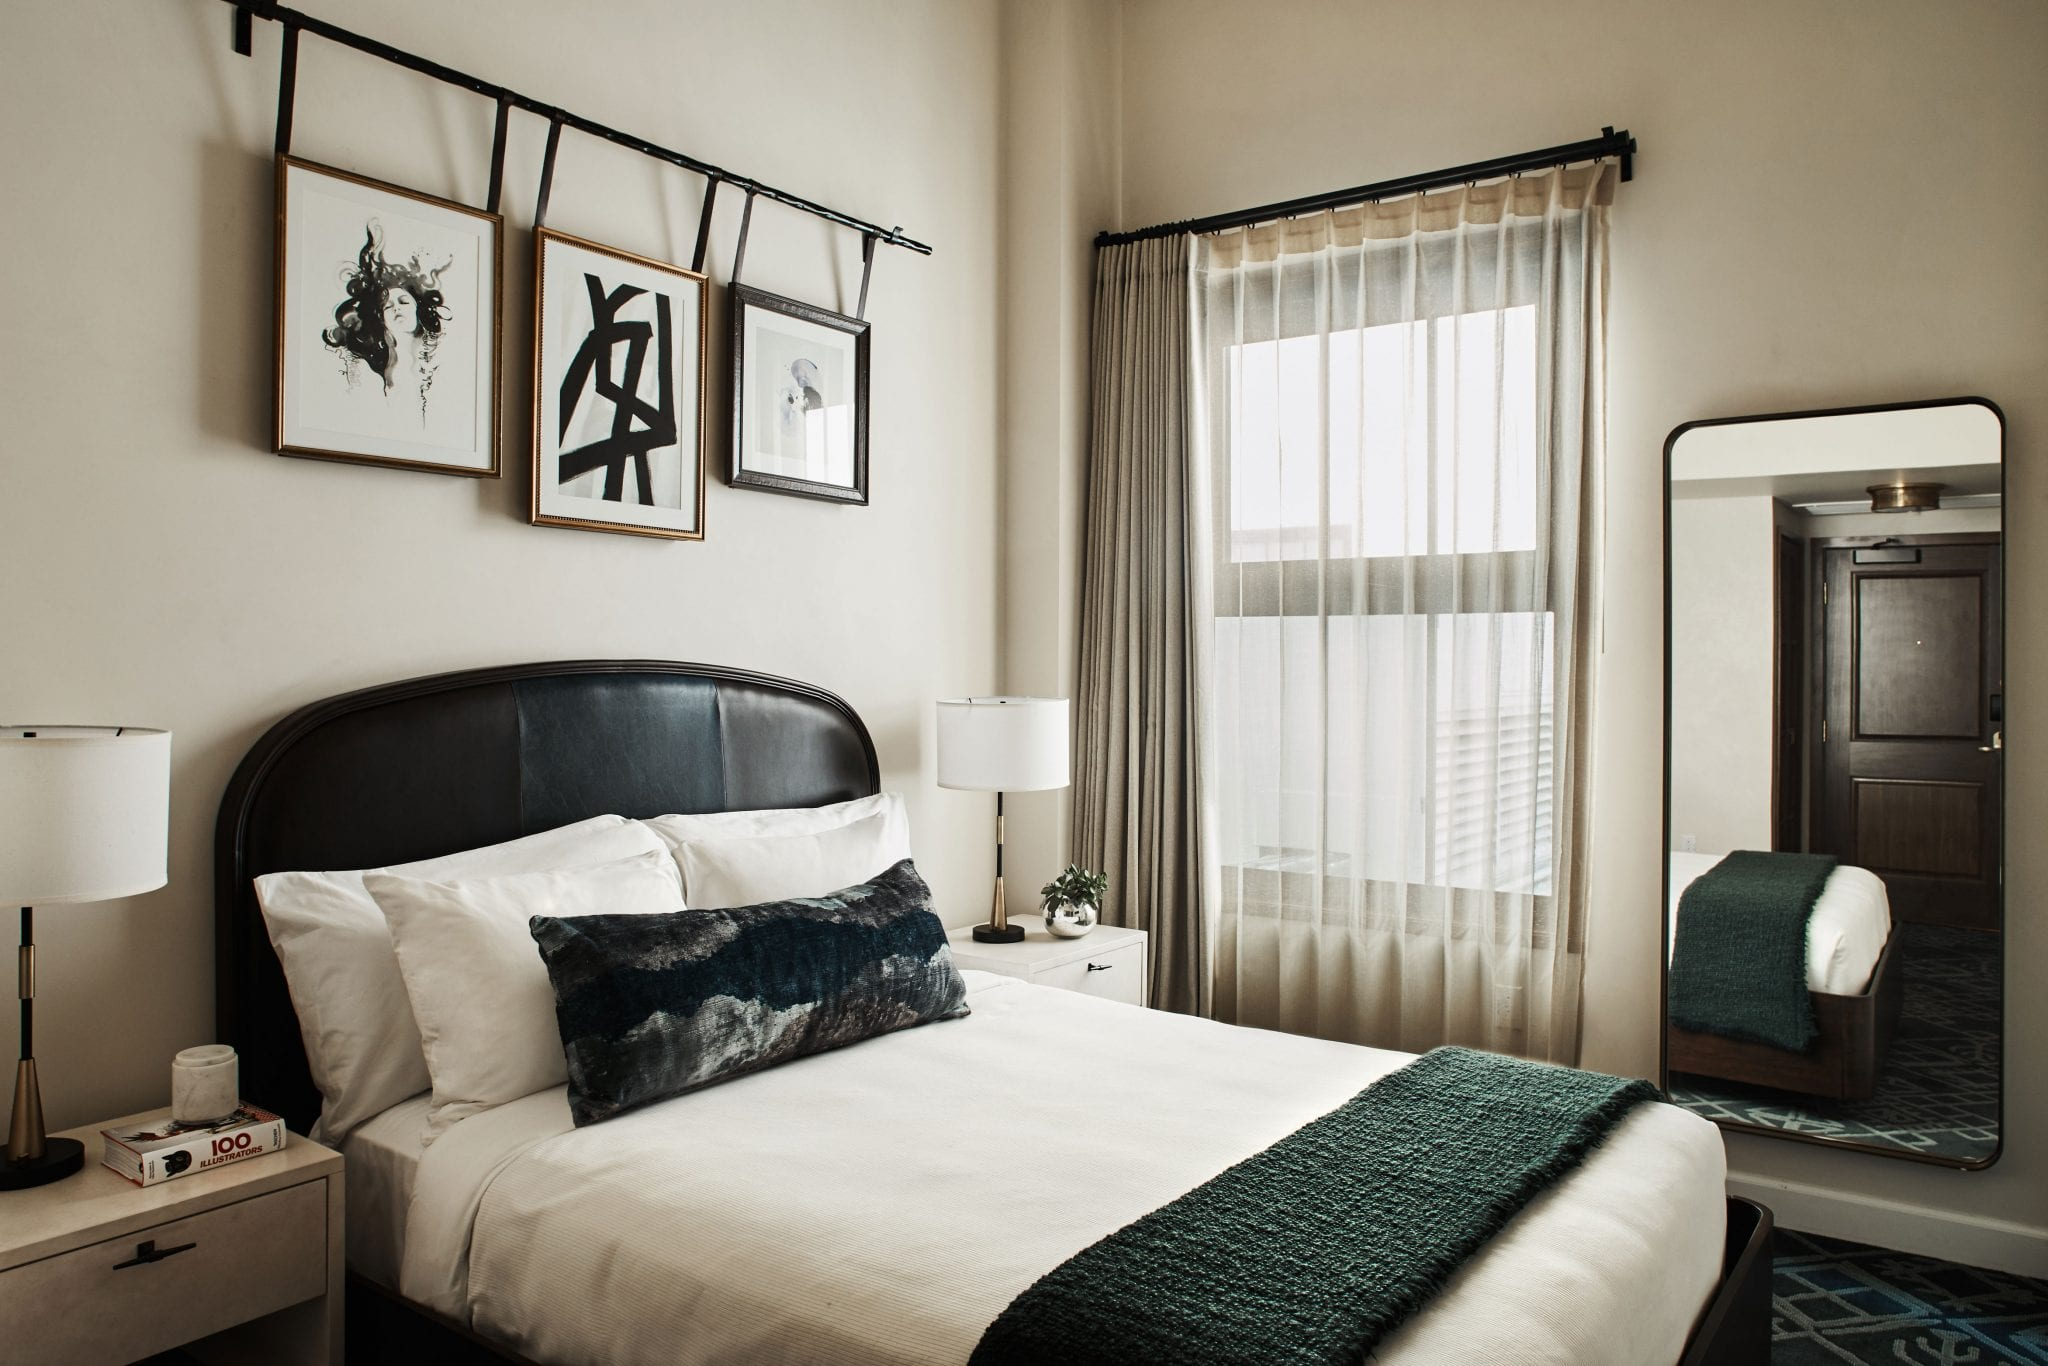 hotel room with queen bed and large mirror